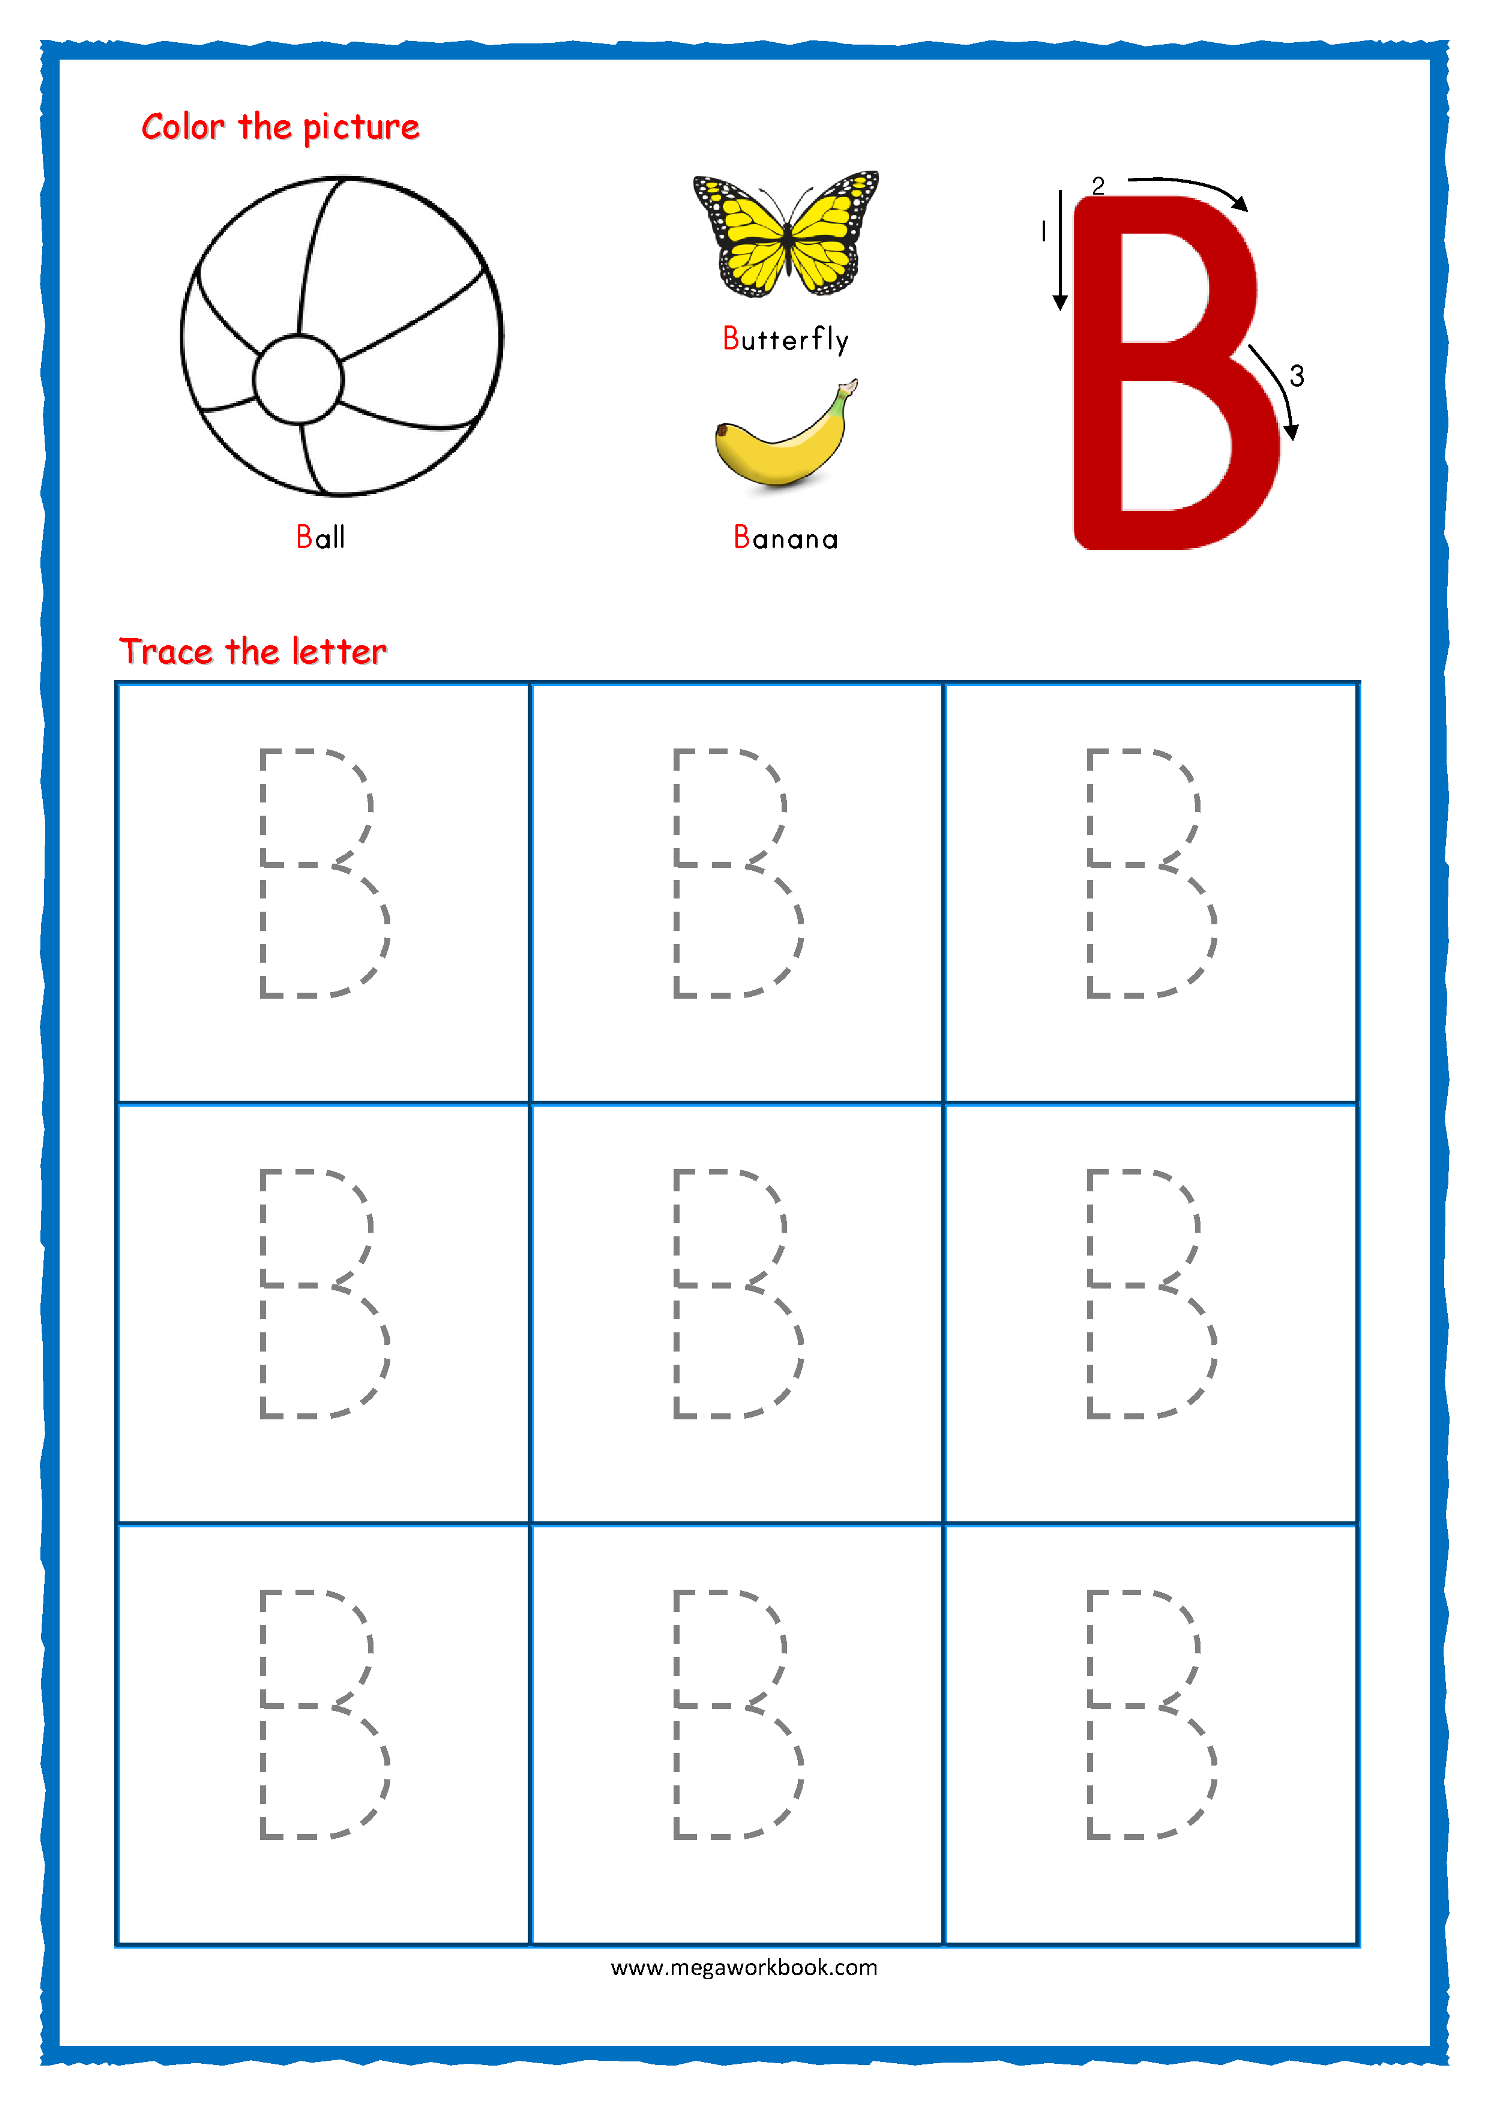 Tracing Letters - Alphabet Tracing - Capital Letters with Alphabet A Tracing Sheet